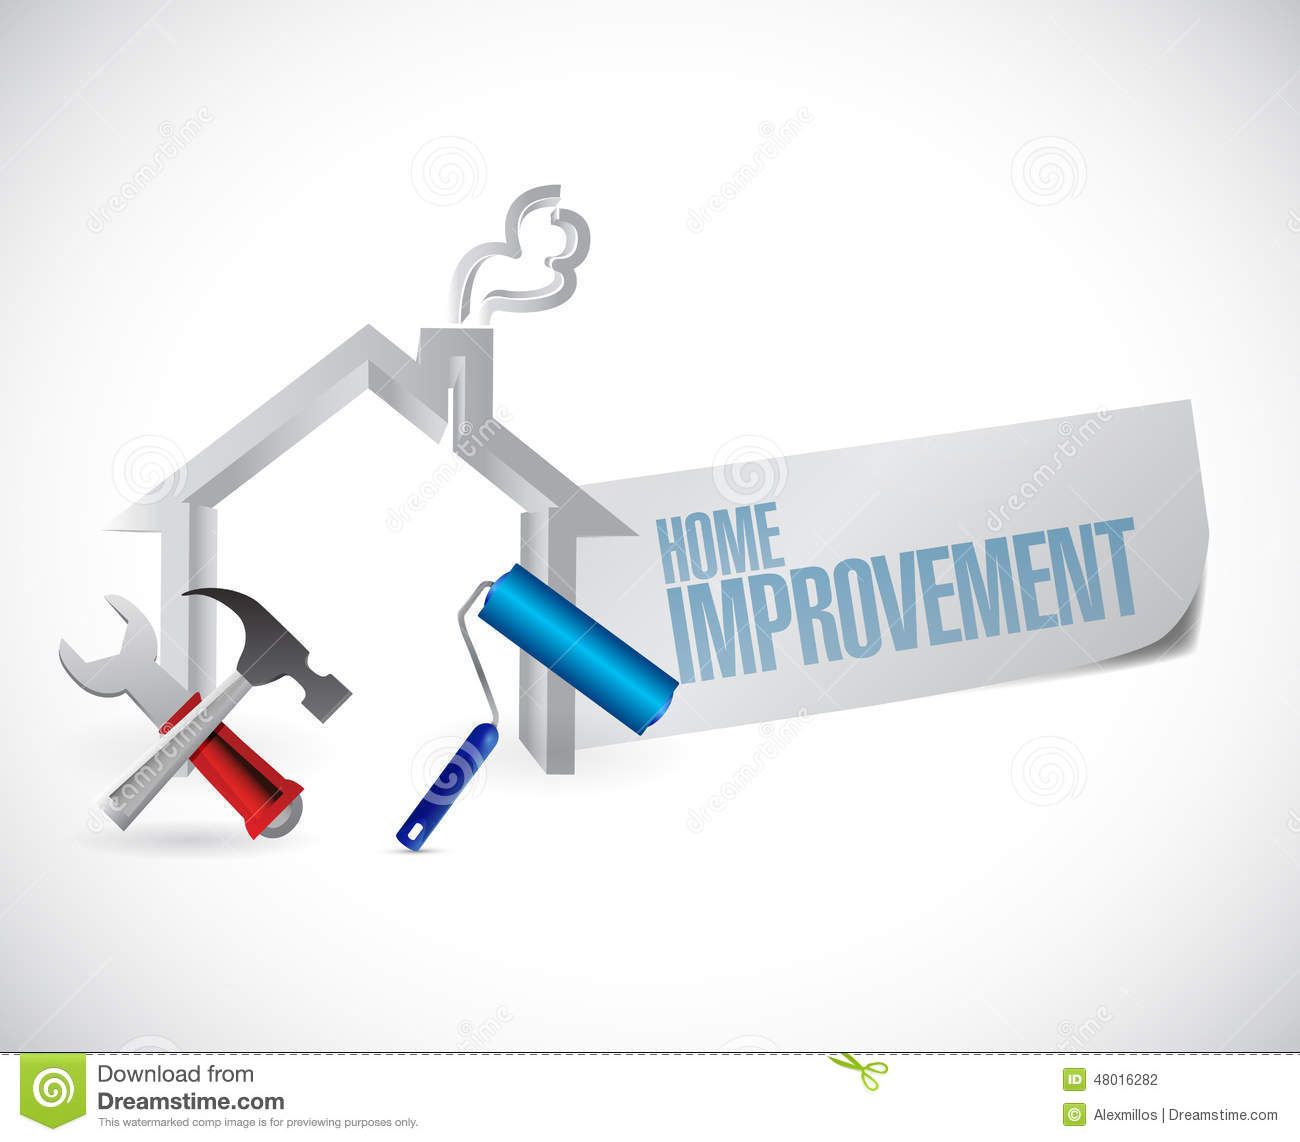 Home improvement sign and tools stock illustration - Home improvement design ...